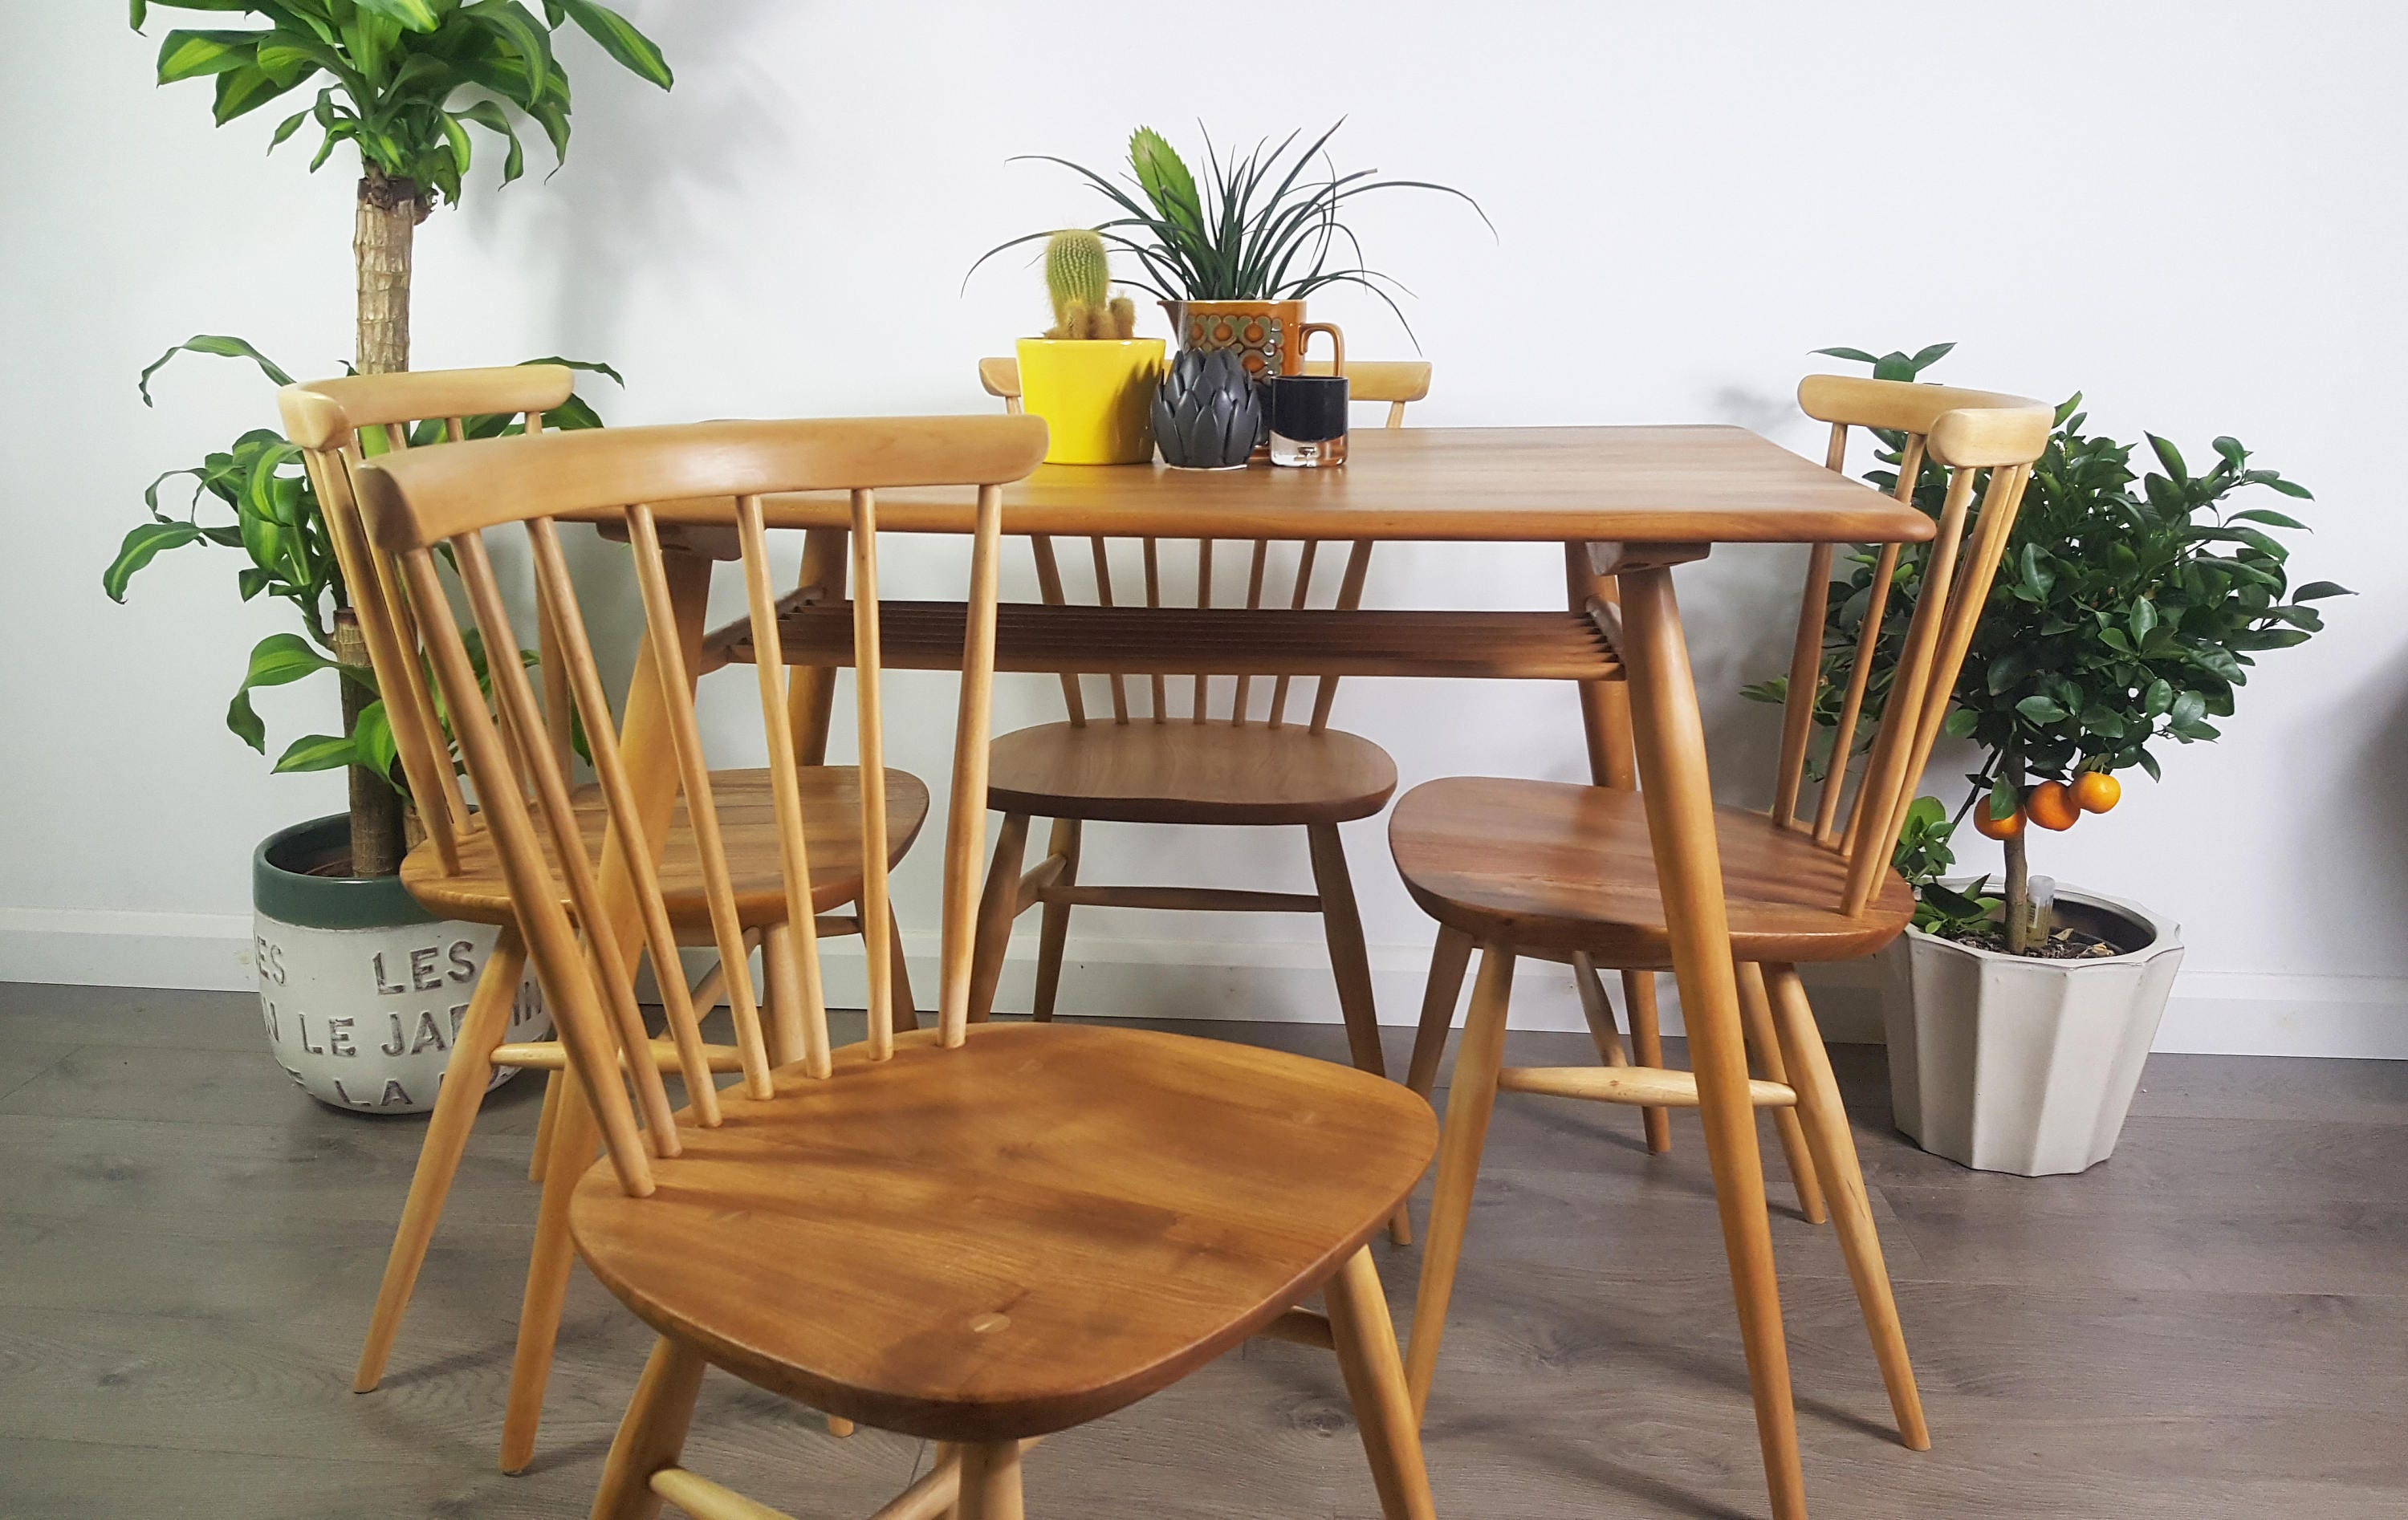 Ercol Table and Chairs Breakfast Table Retro Vintage 50s 60s 70s Refinished